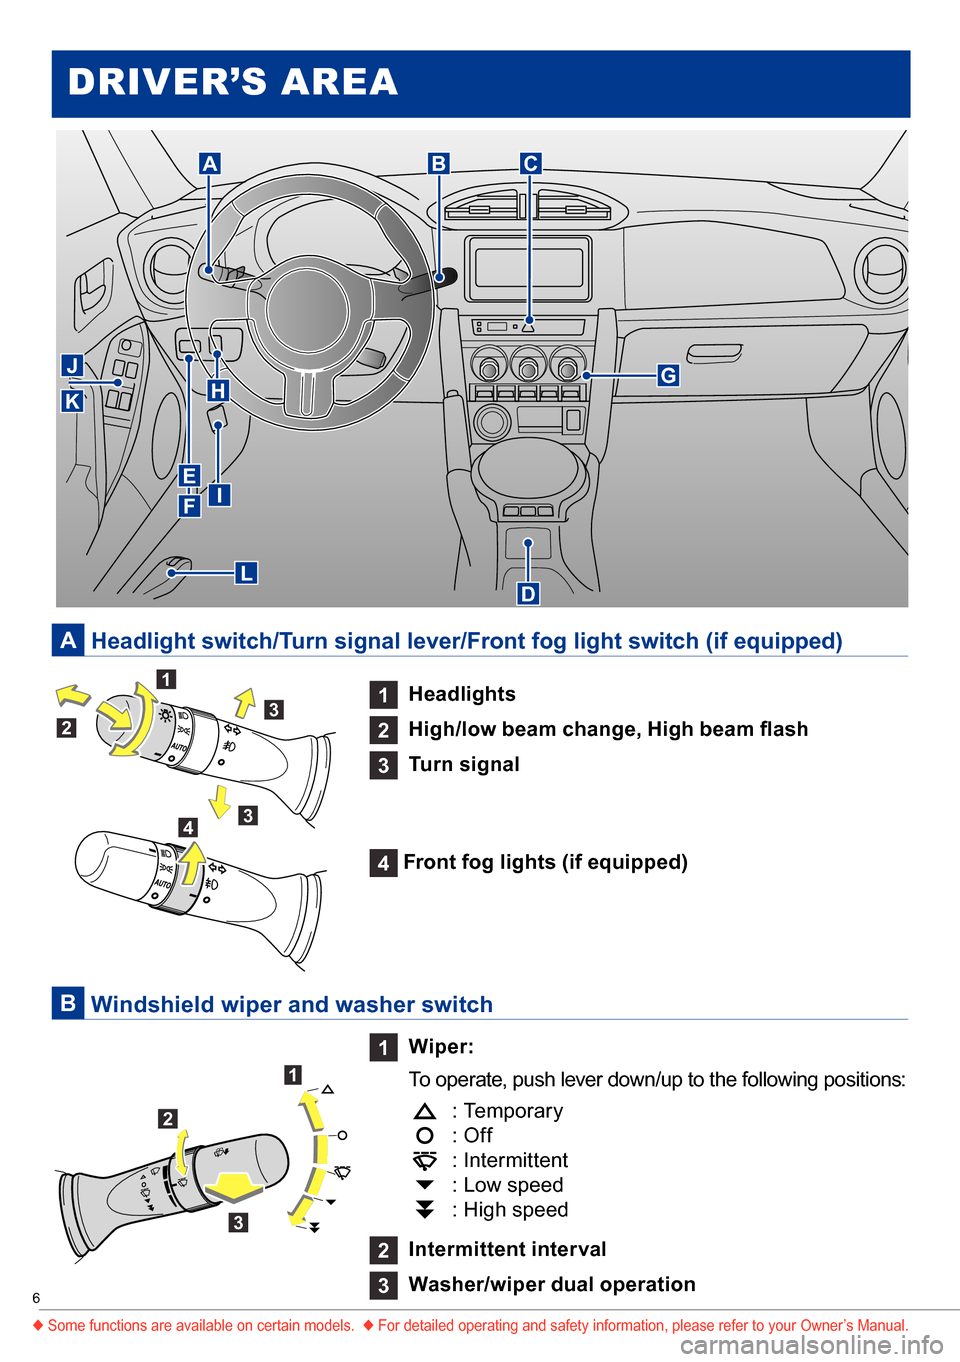 SUBARU BRZ 2016 1.G Quick Reference Guide, Page 6